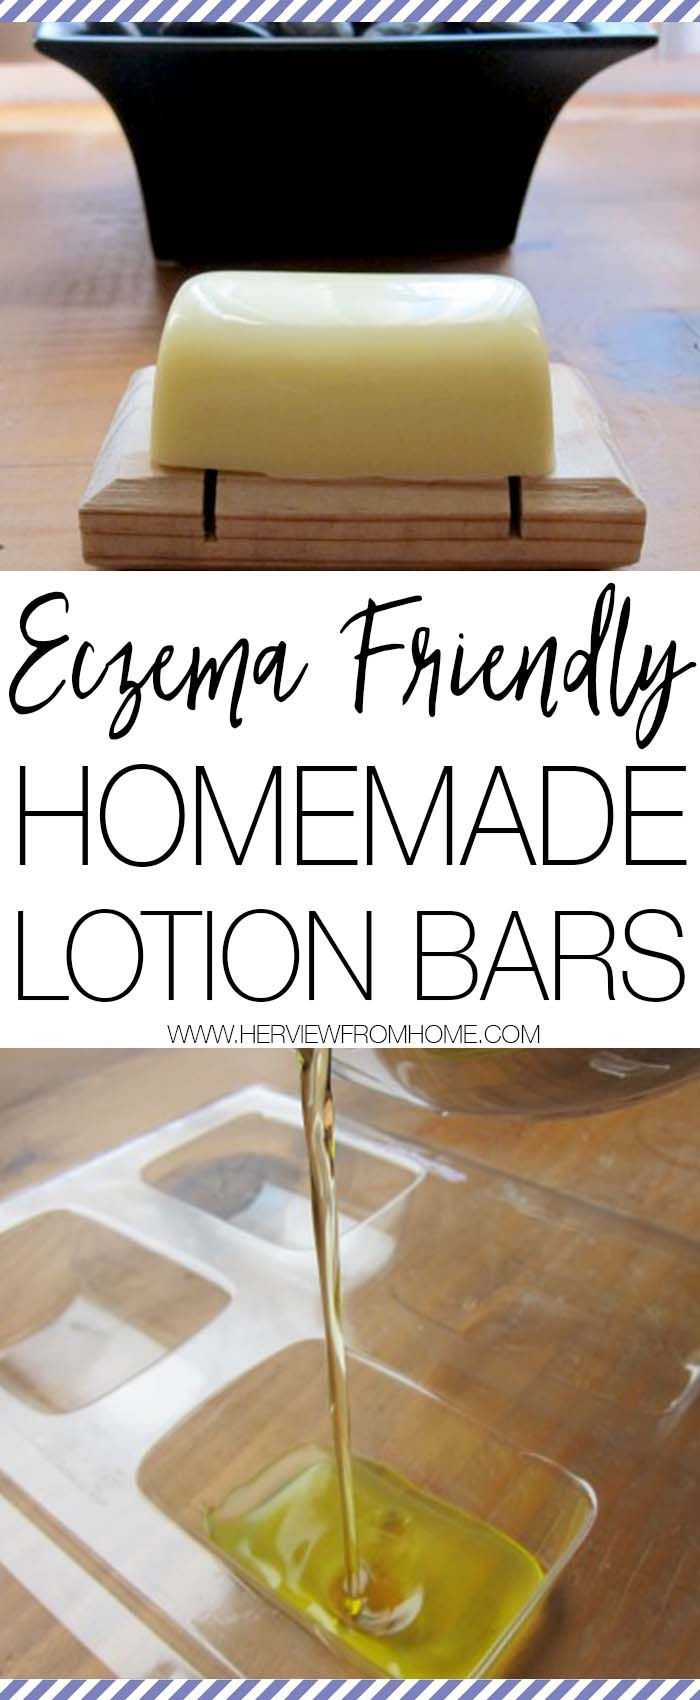 It can be so difficult to find lotion that doesn't irritate sensitive skin. These eczema friendly homemade lotion bars are amazing for allergies and skin reactions - but also fantastically moisturising too! - Need to make this for the kids !